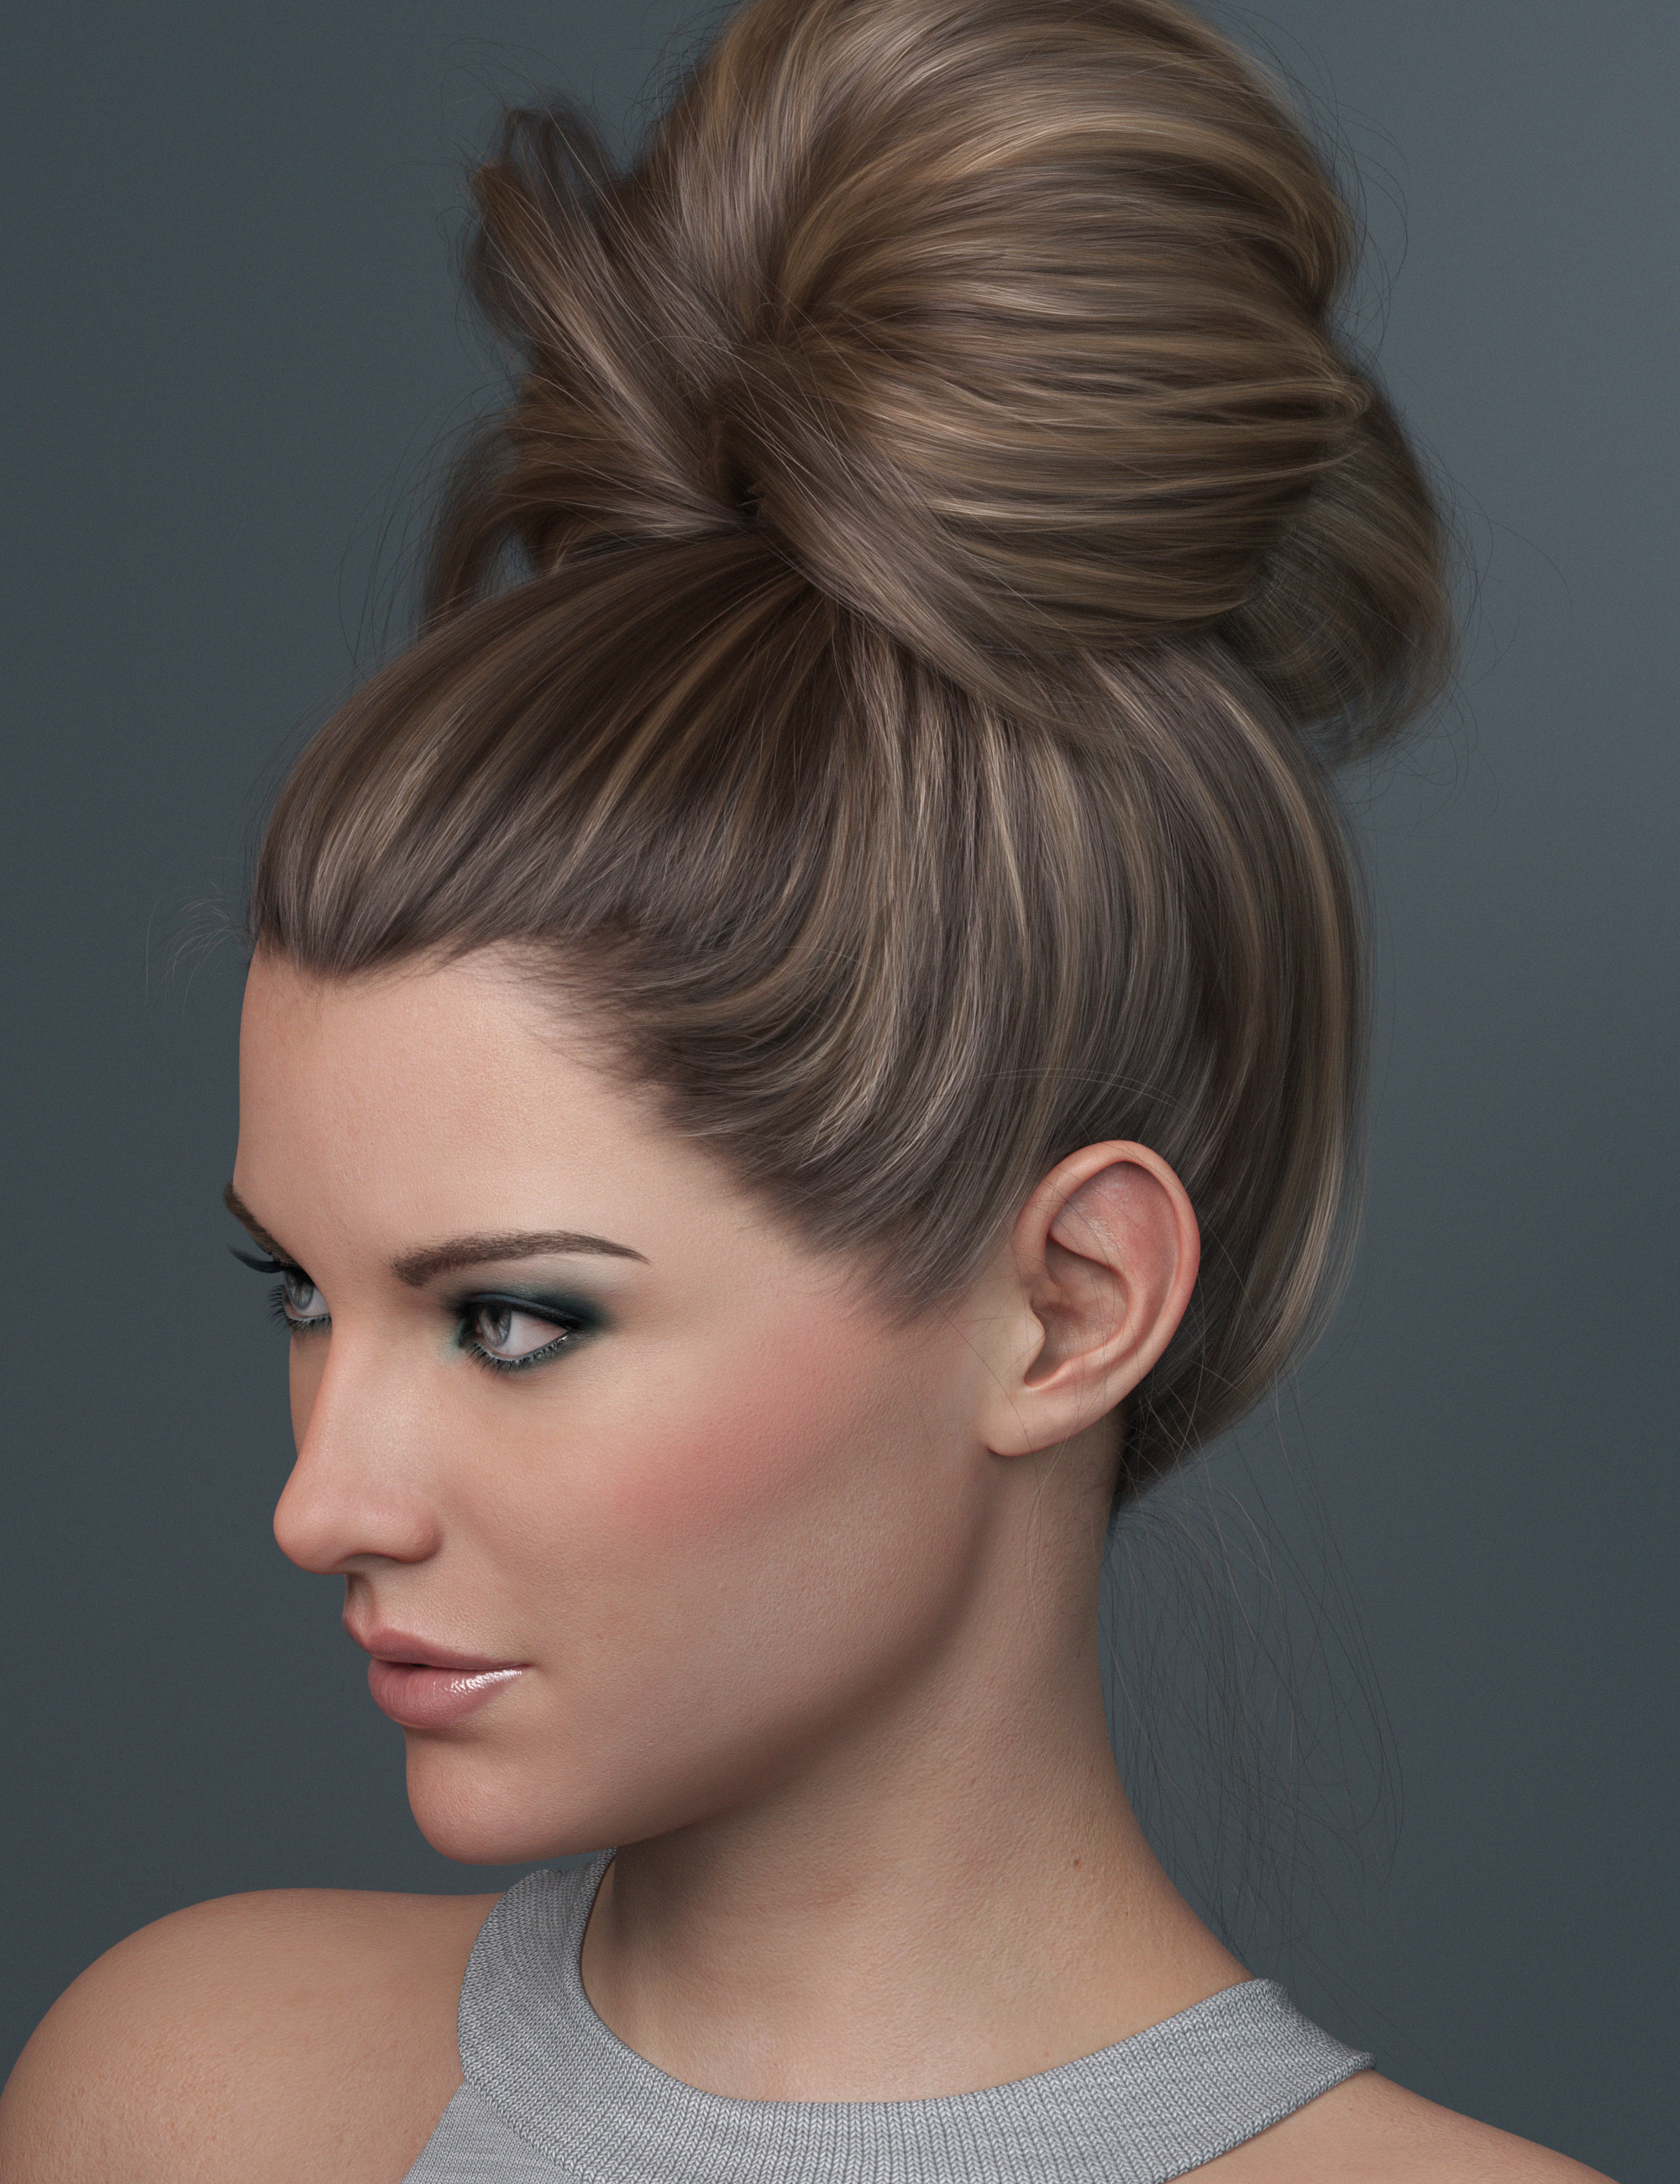 Top Updo for Genesis 3, 8, and 8.1 Females by: outoftouch, 3D Models by Daz 3D